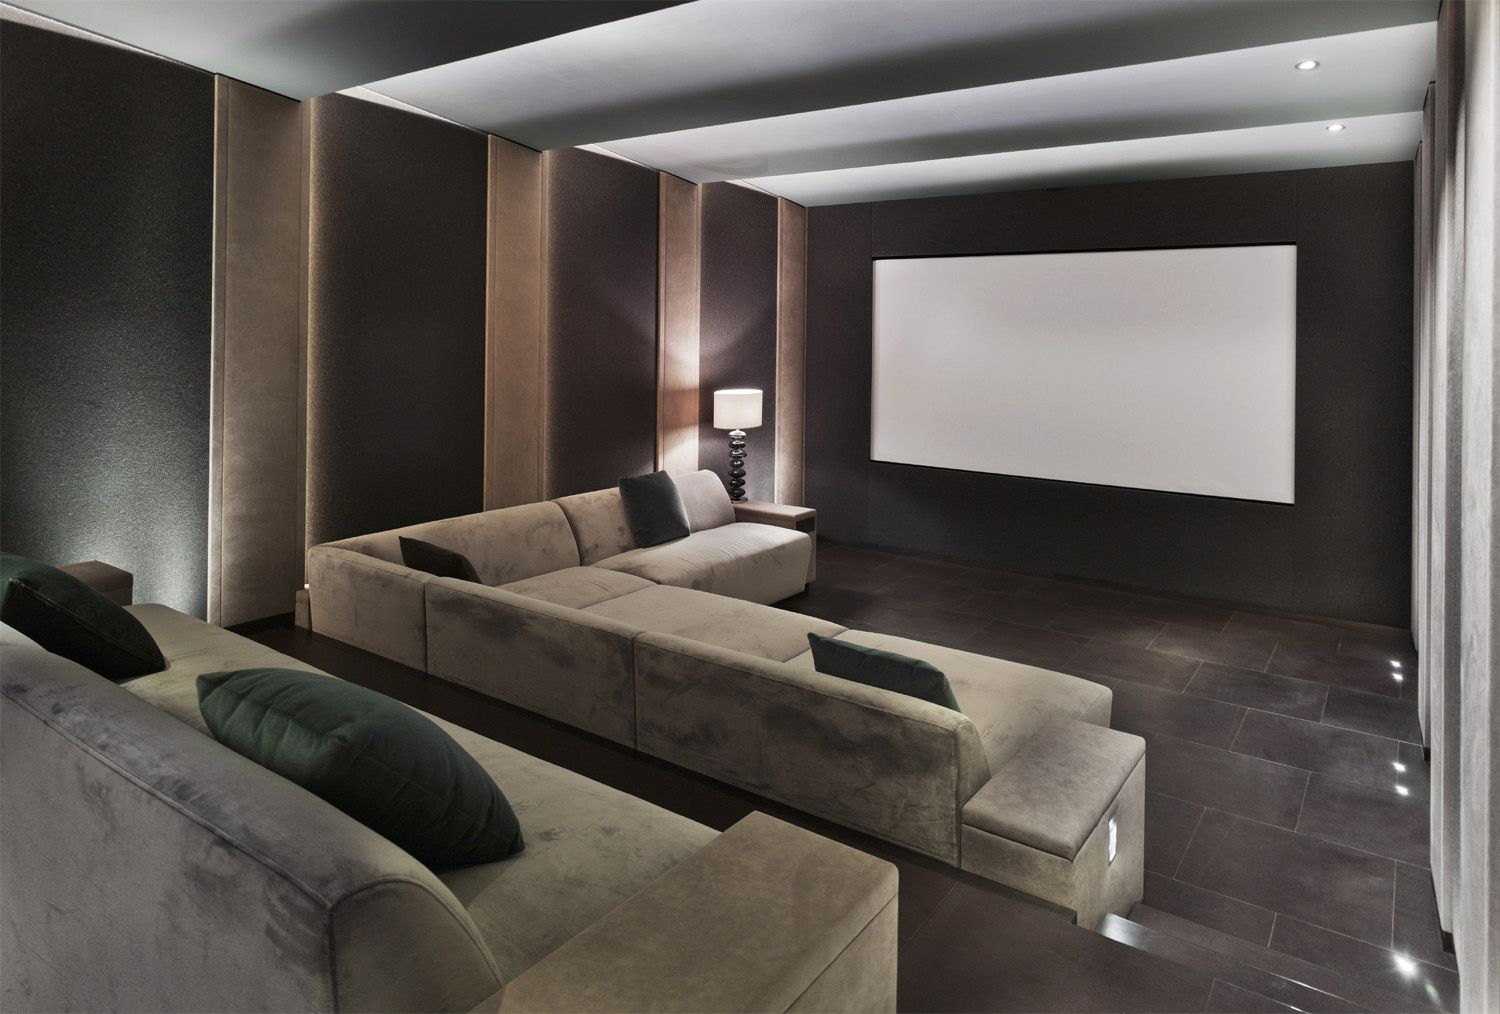 Home theater system planning what you need to know for Home cinema room